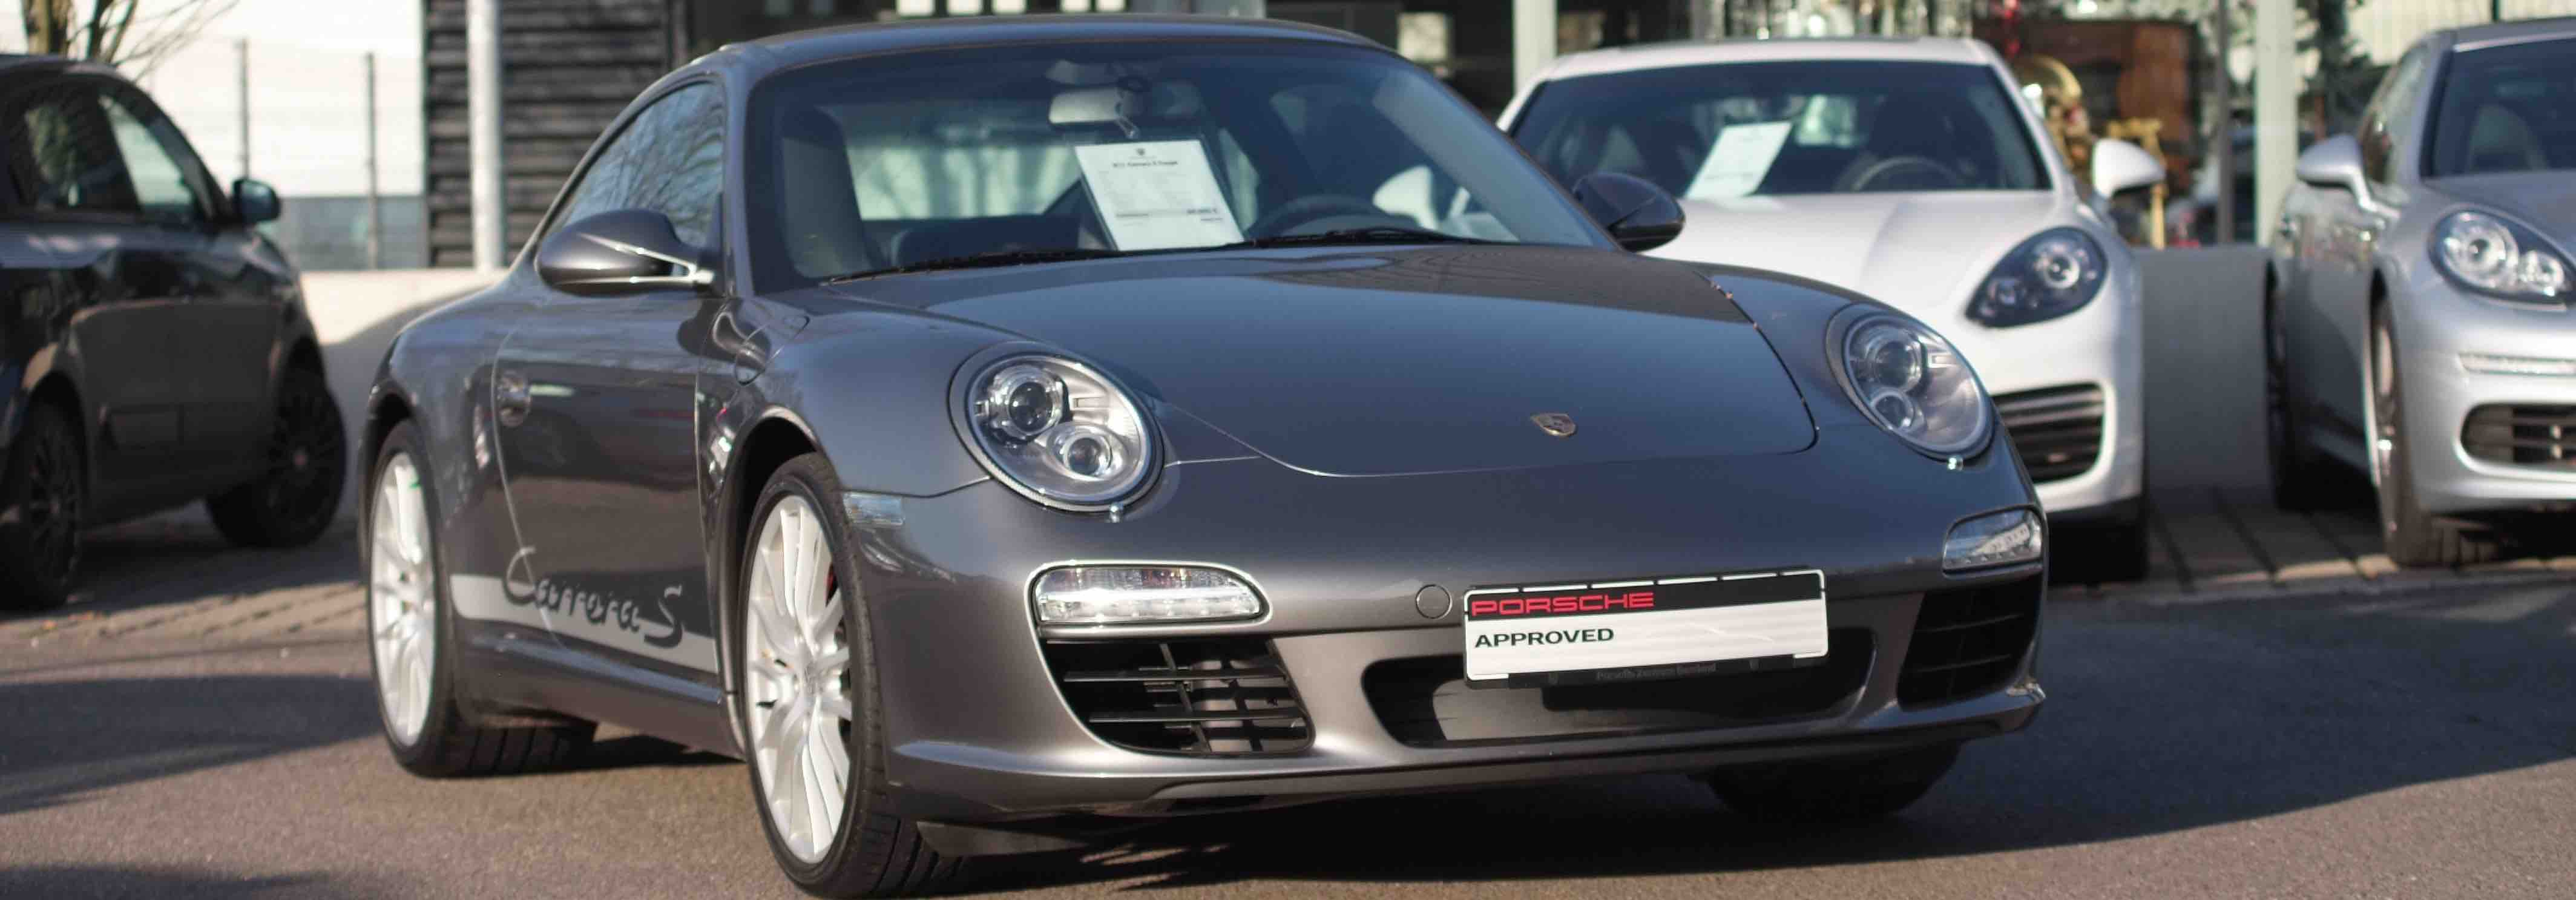 Porsche occasion 911 type 997 carrera S coupe phase 2 385 cv